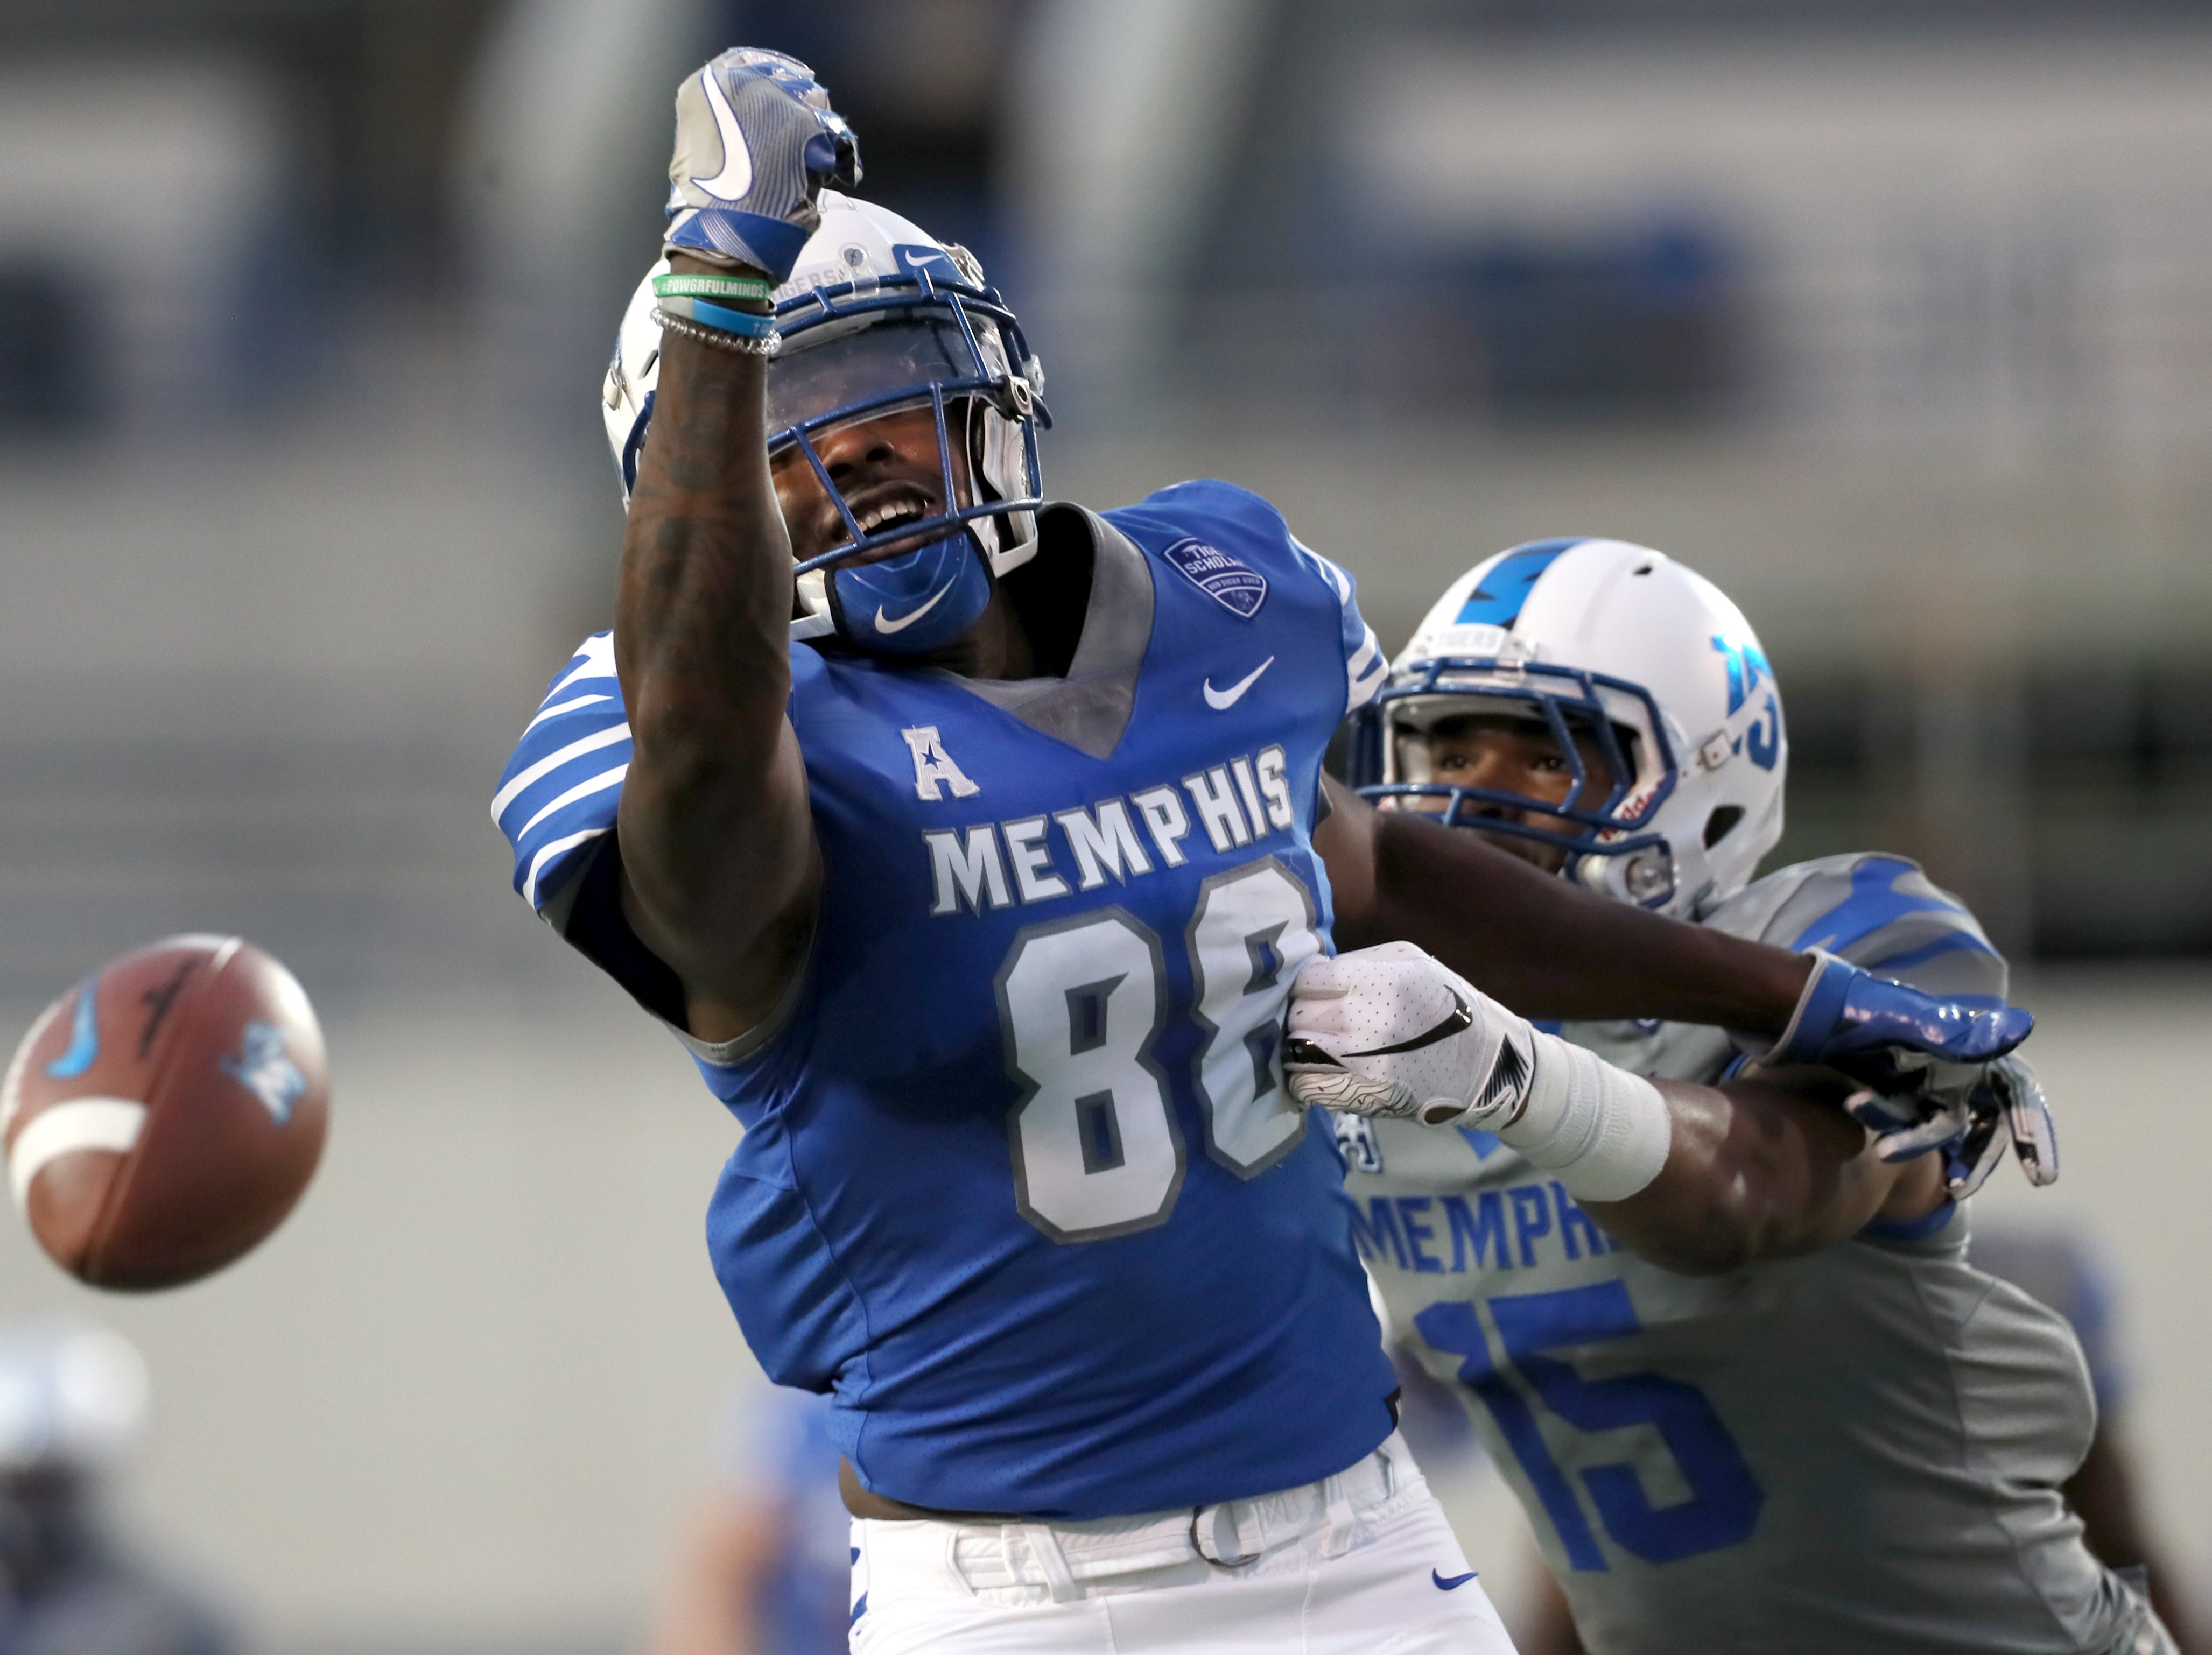 Memphis Tigers tight end Tyce Daniel stretches out, coming up just short on a catch during their Friday Night Stripes spring game at Liberty Bowl Memorial Stadium on Friday, April 12, 2019.